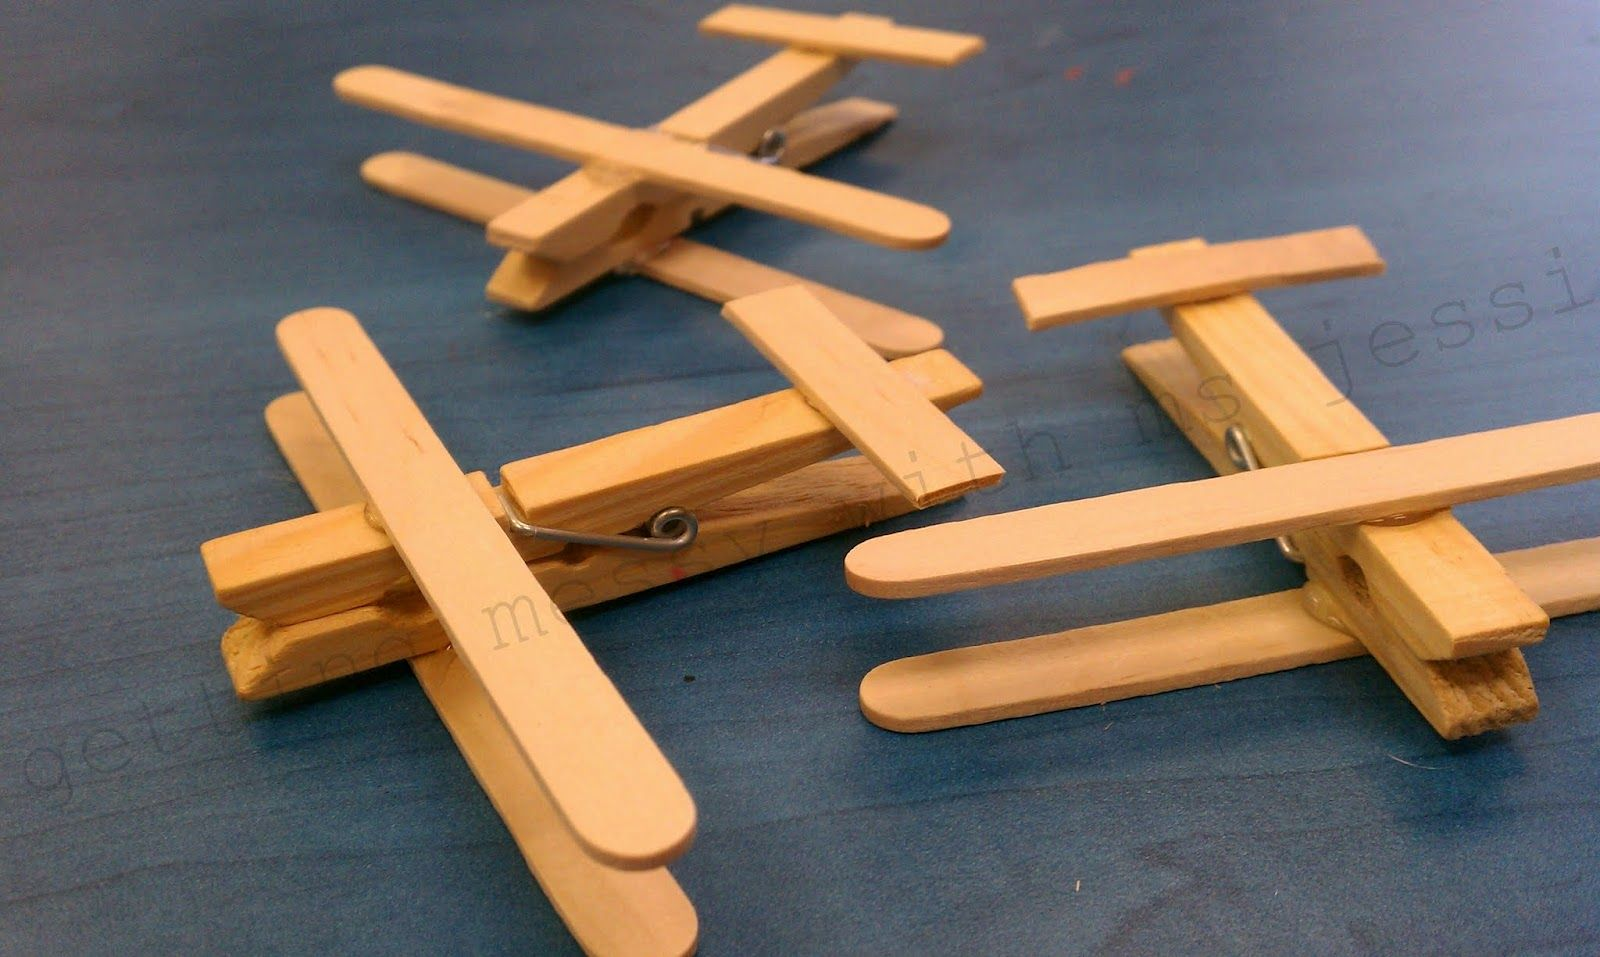 Arts and crafts sticks - Arts And Crafts Sticks Popsicle Stick Airplane Crafts For Kids Good Transportation Scooters For Adluts